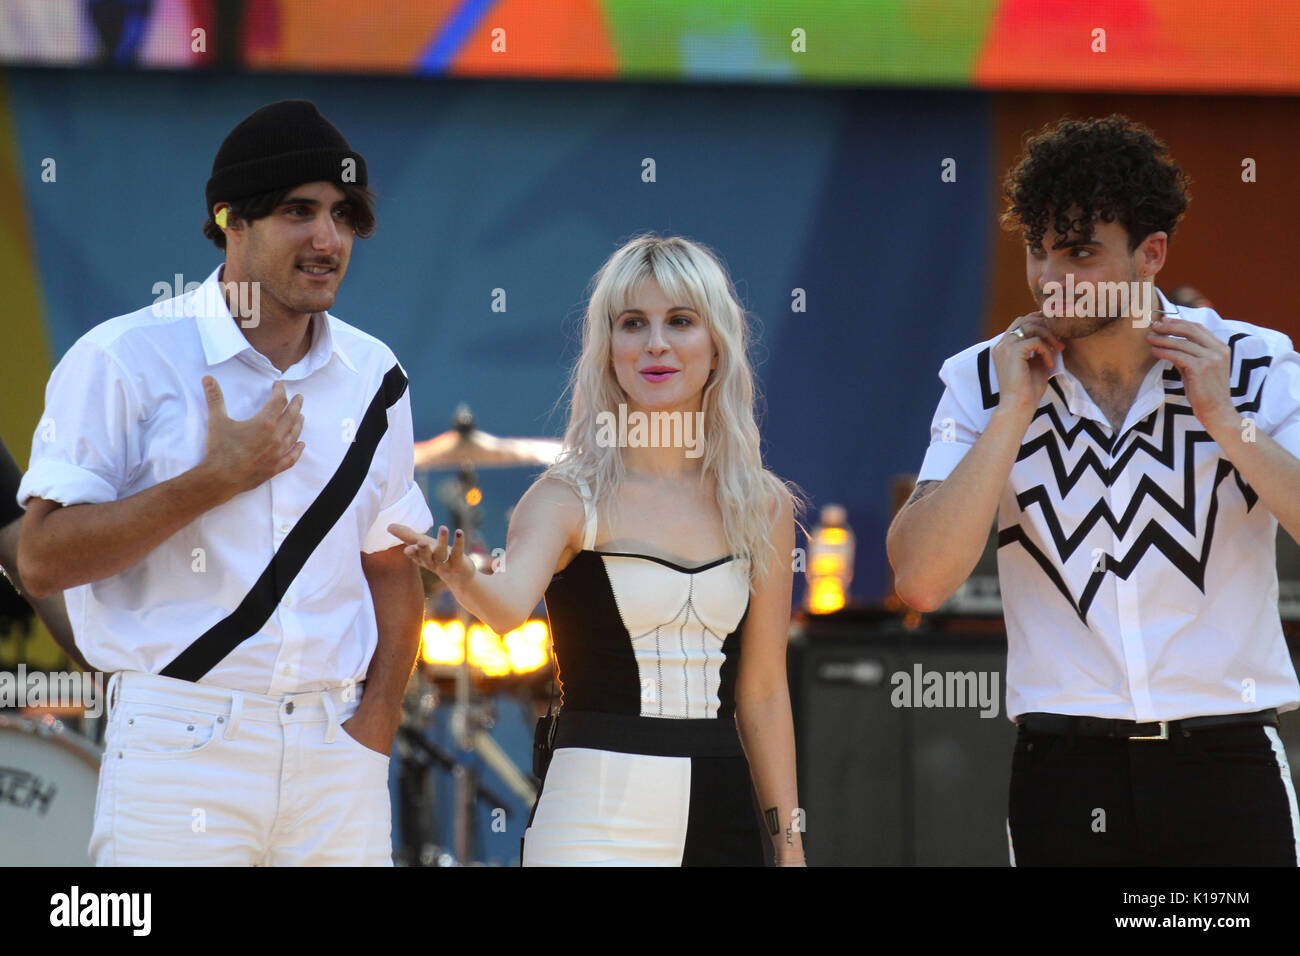 New York, New York, USA. 25th Aug, 2017. Paramore performs for Good Morning America Concert series in New York's Central .Park. Credit: Bruce Cotler/Globe Photos/ZUMA Wire/Alamy Live News - Stock Image